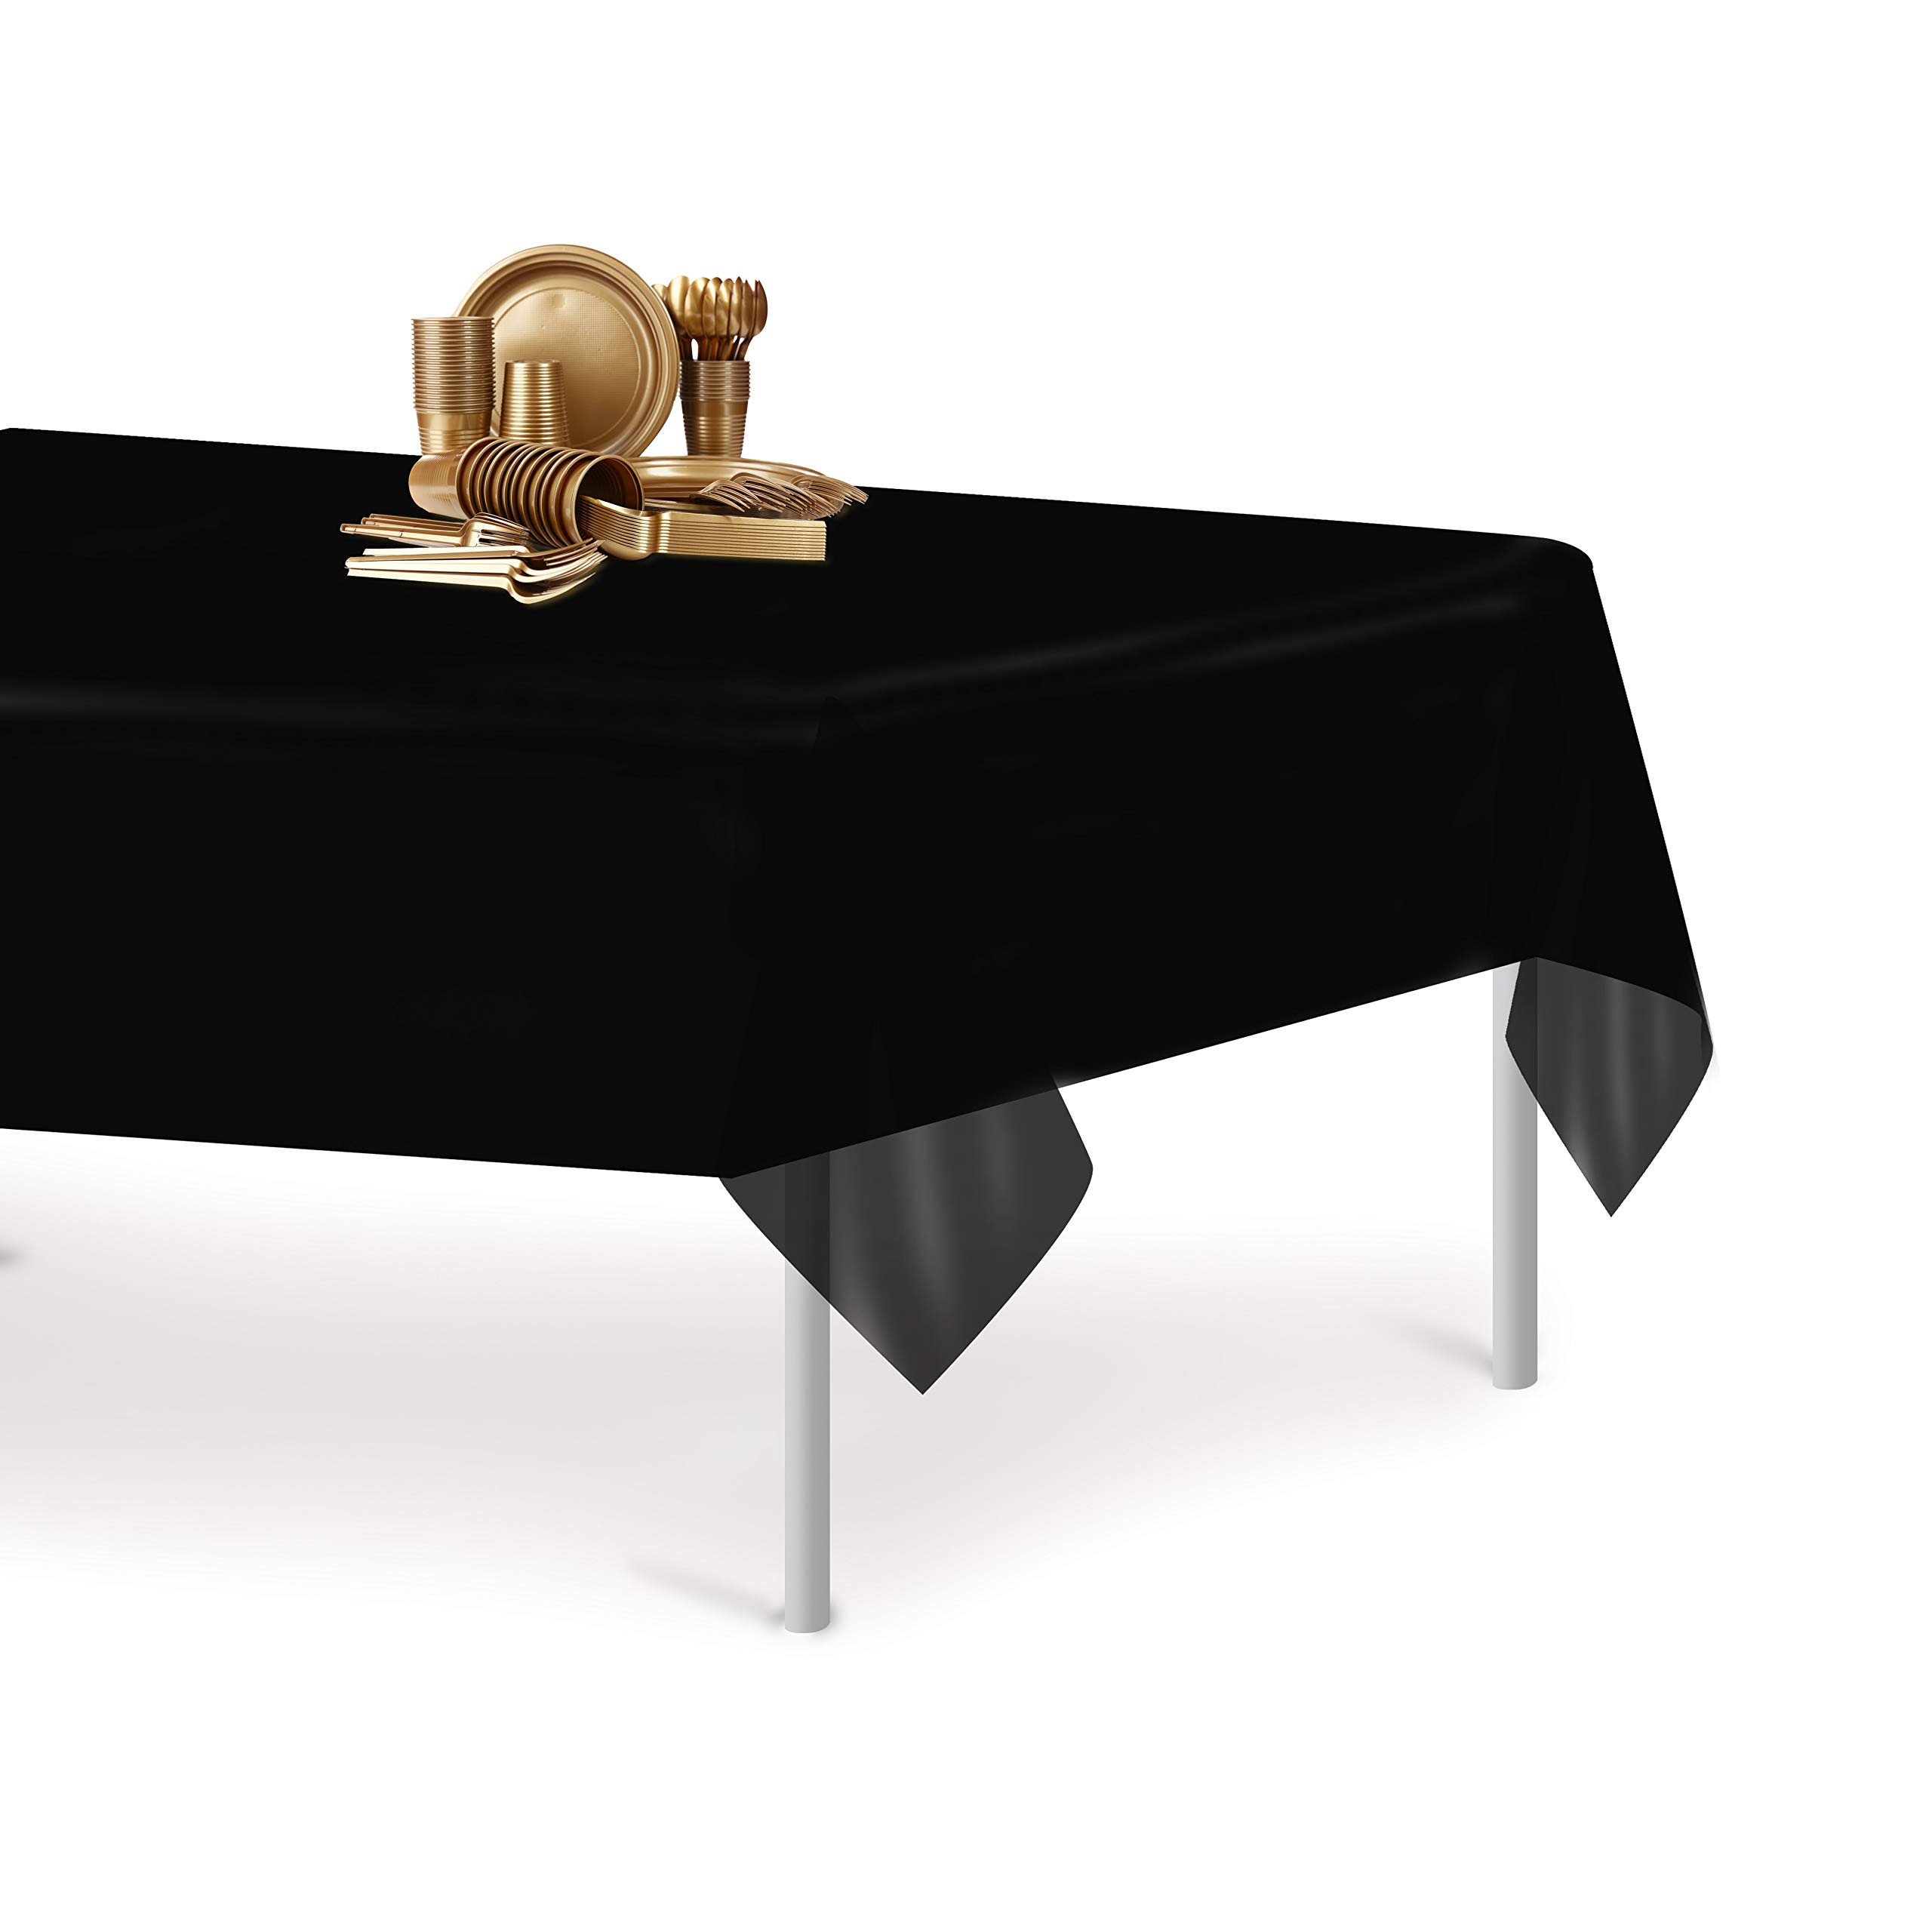 Black 12 Pack Premium Disposable Plastic Tablecloth 54 Inch. x 108 Inch. Rectangle Table Cover By Grandipity by Grandipity (Image #4)